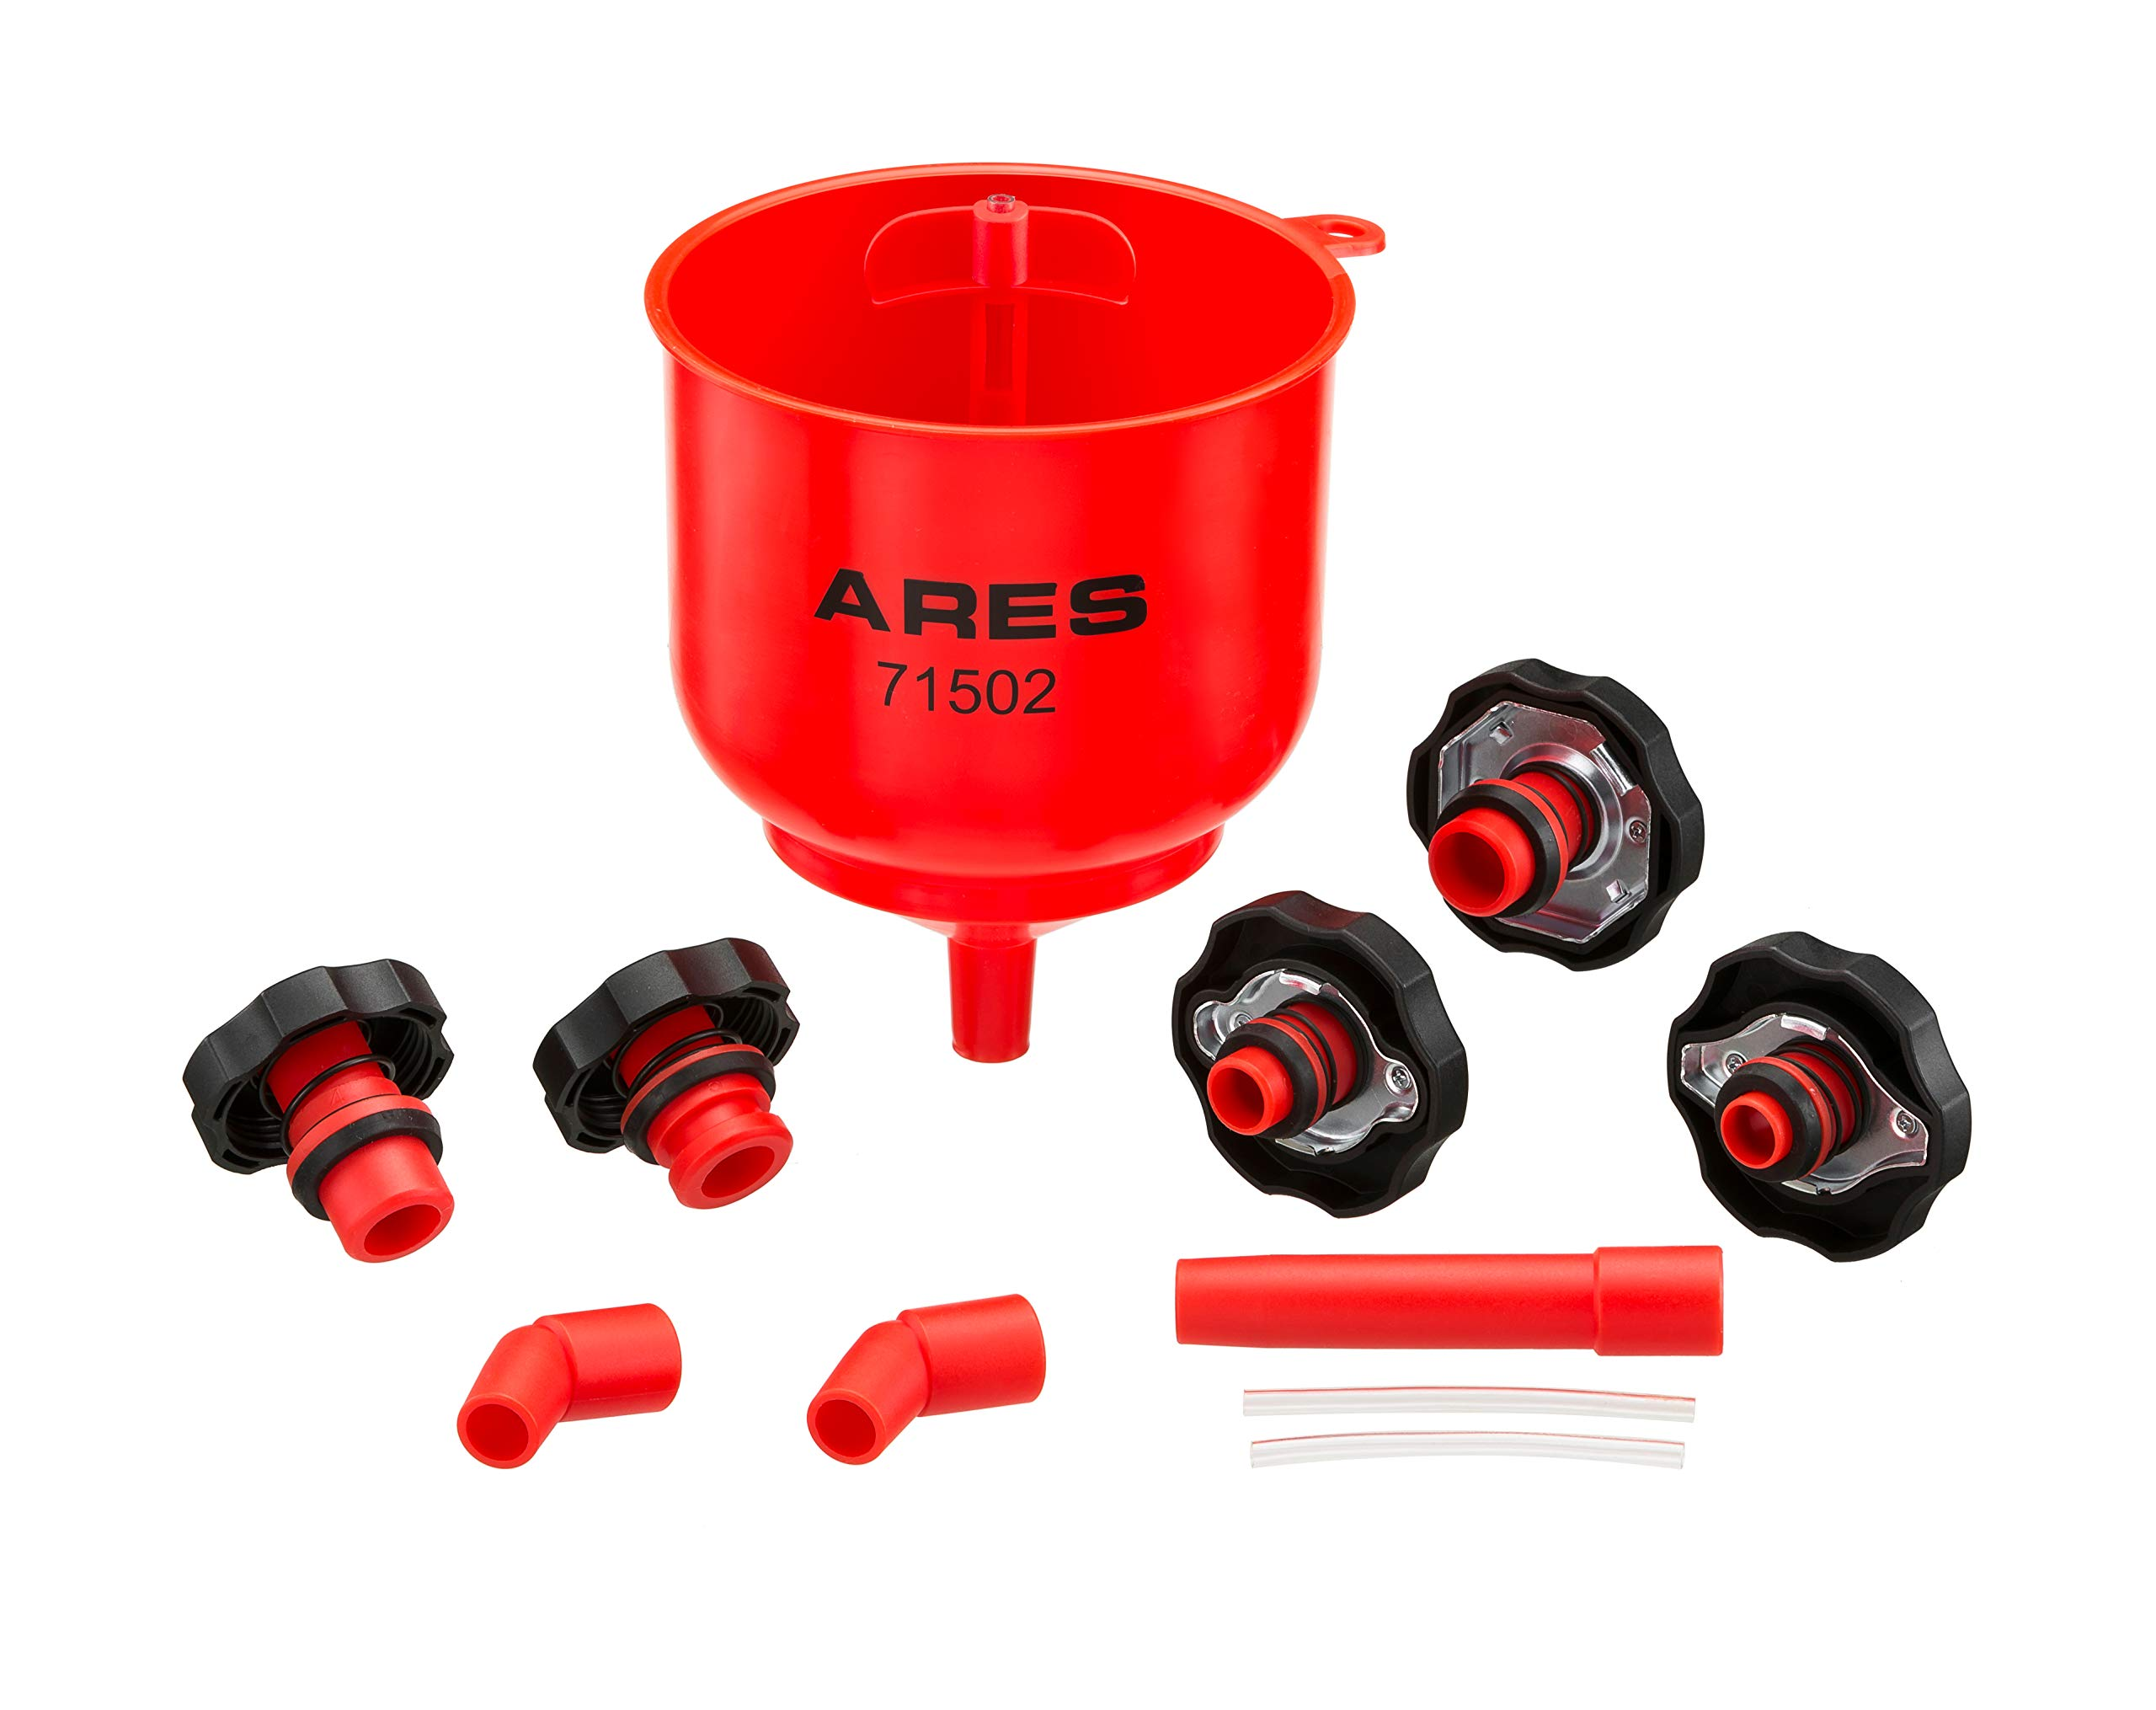 ARES 71502 | Spill Proof Coolant Filling Kit | Eliminates Trapped Air Pockets and Squeaky Belts Due to Overflow by ARES (Image #9)